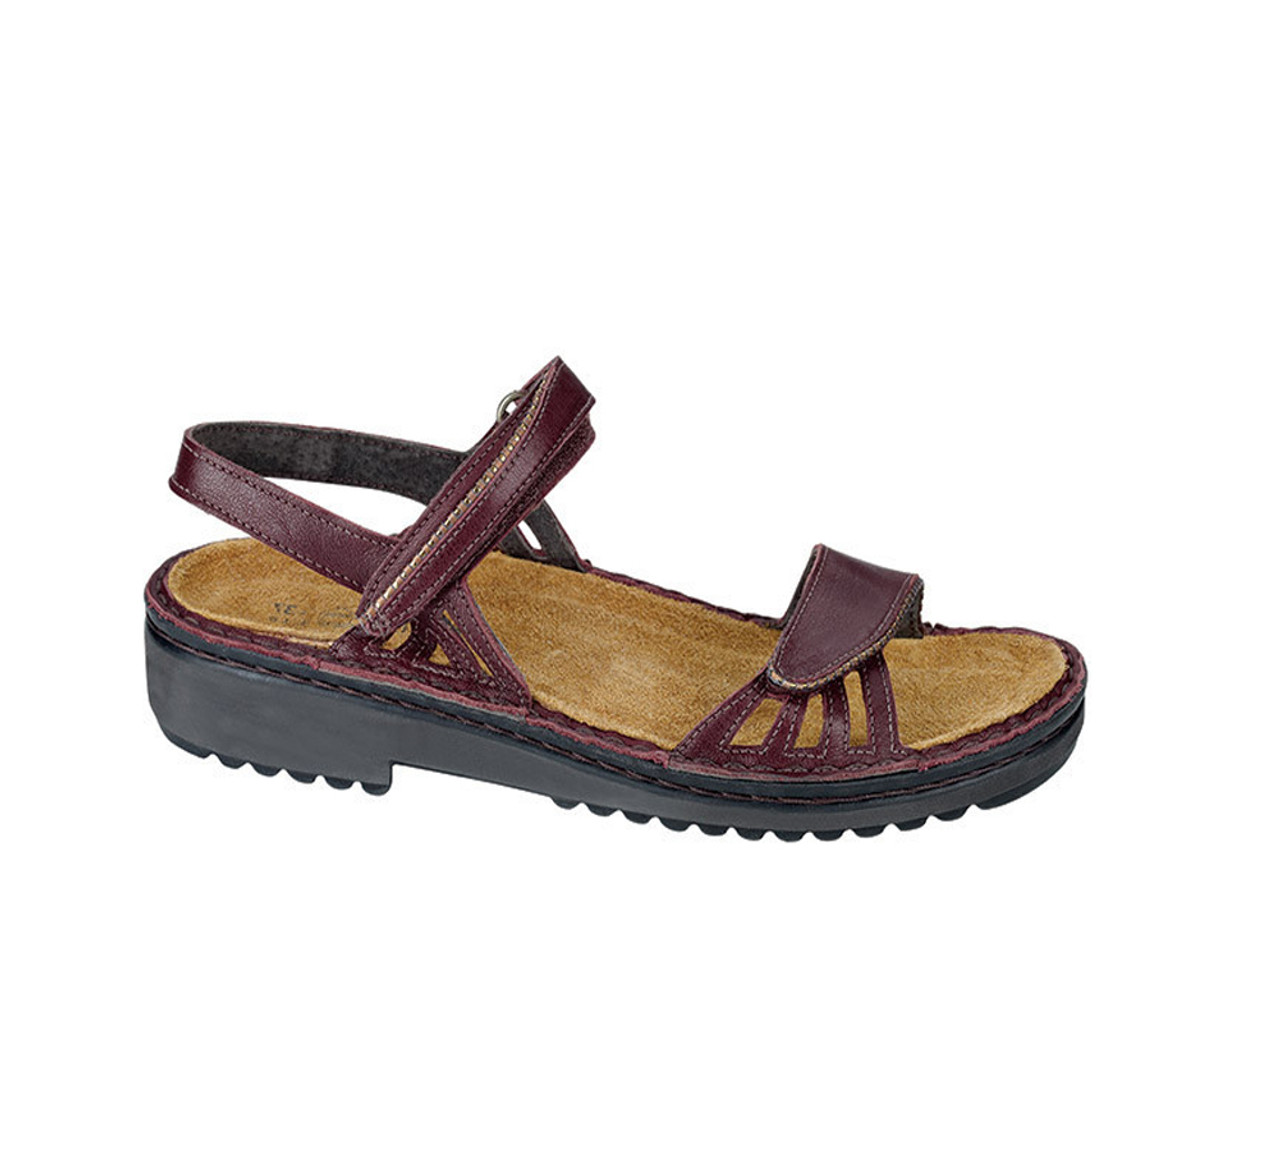 ee516a5dbdc7 Naot Women s Anika Sandals Shiraz Leather - Shop now   Shoolu.com